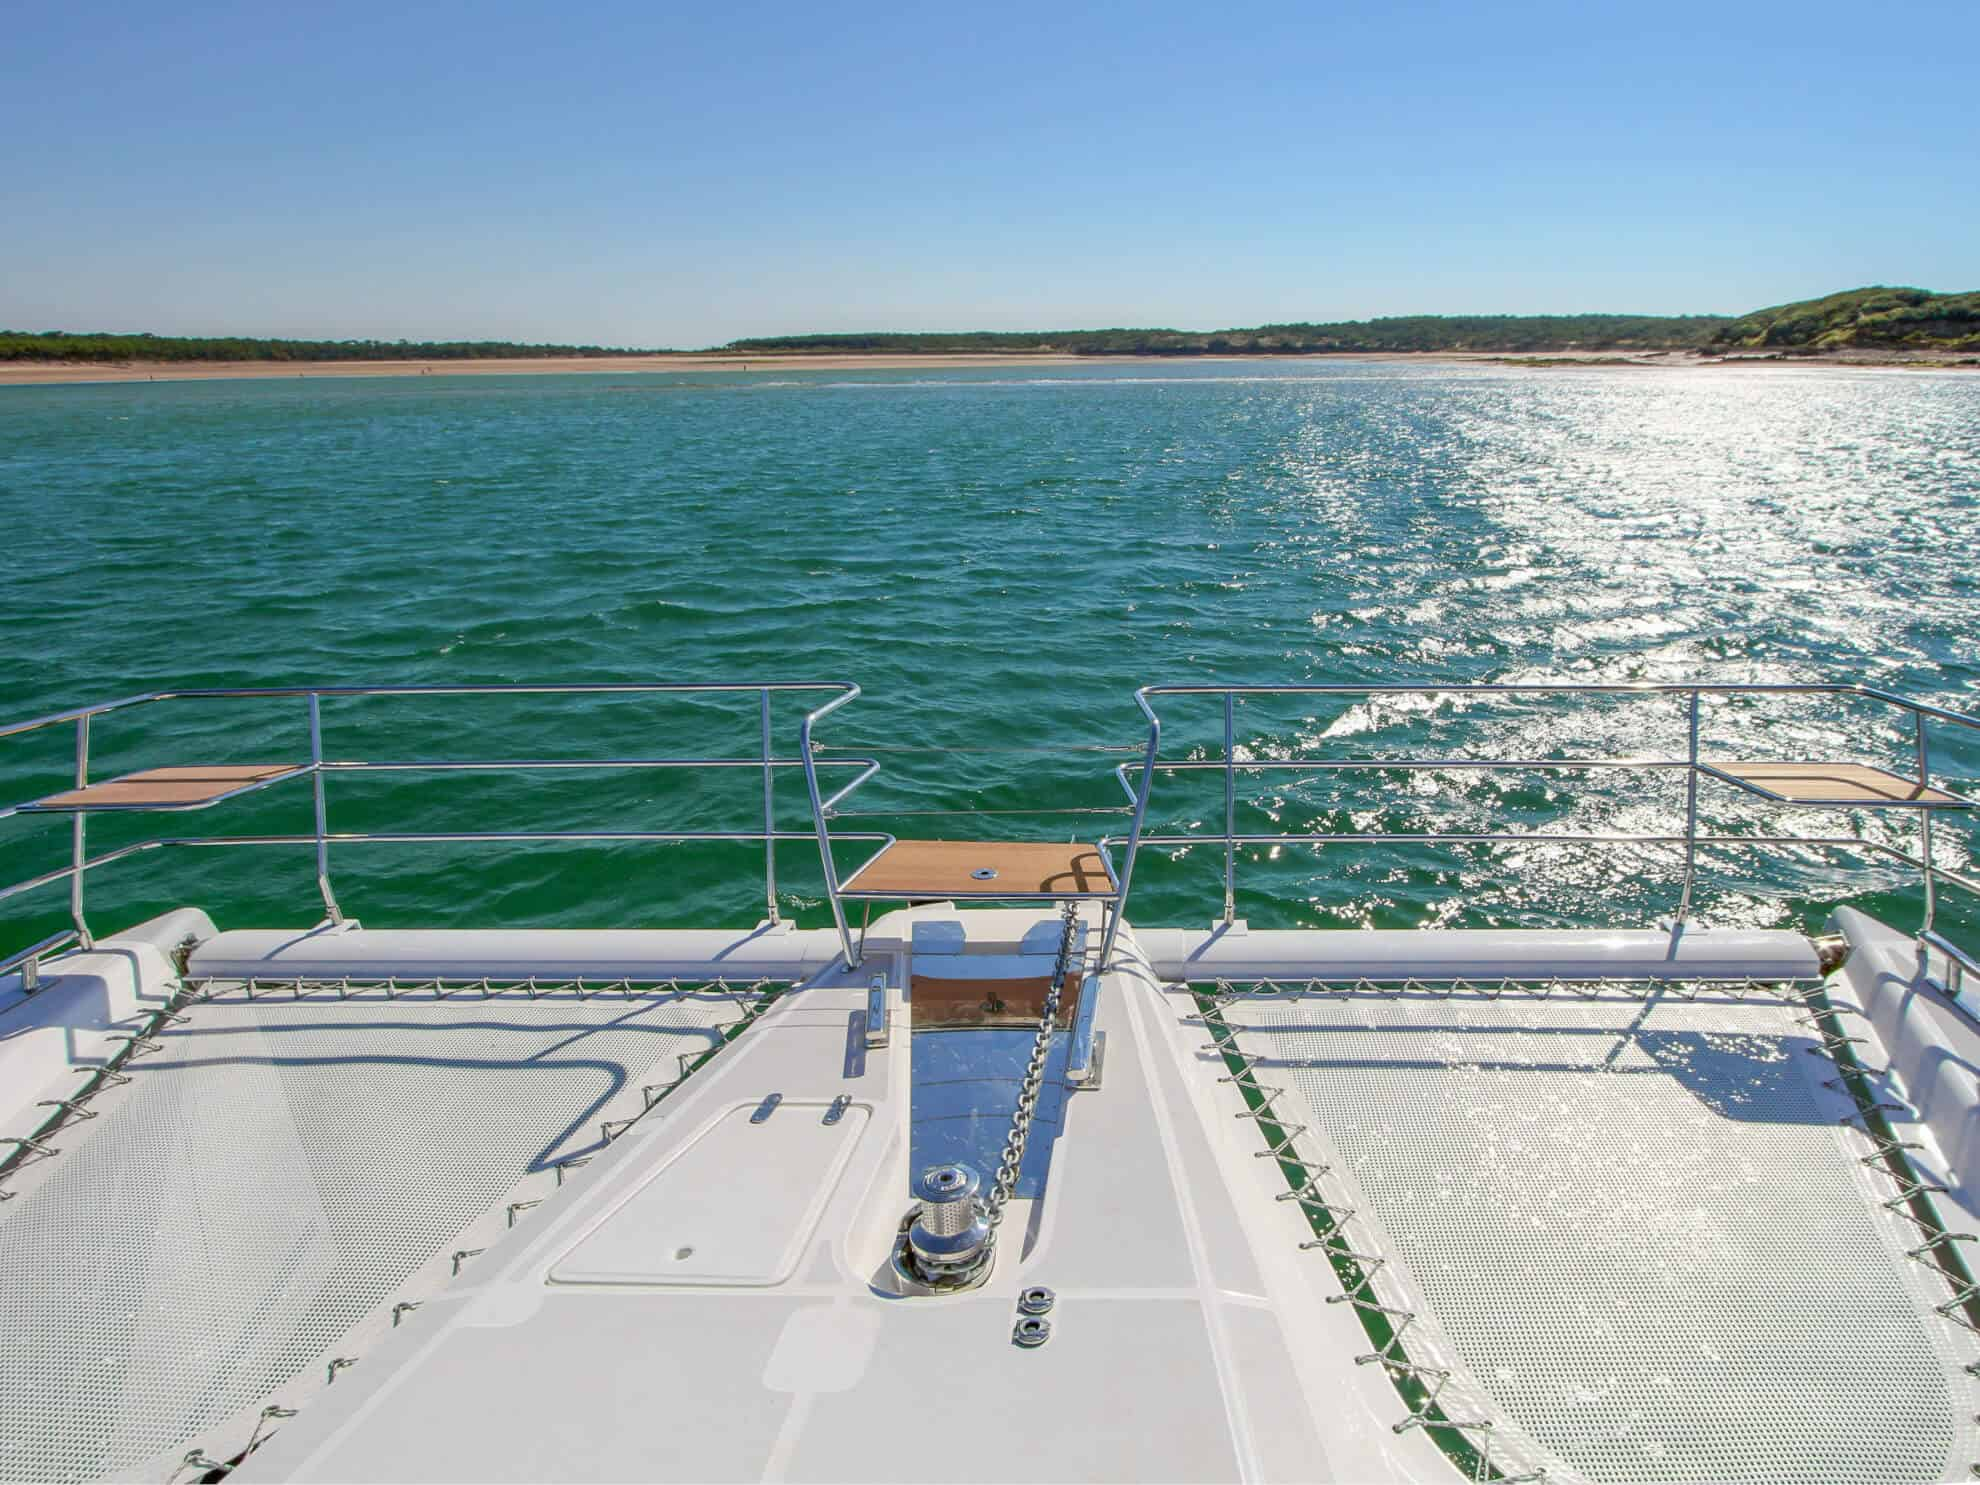 The foredeck